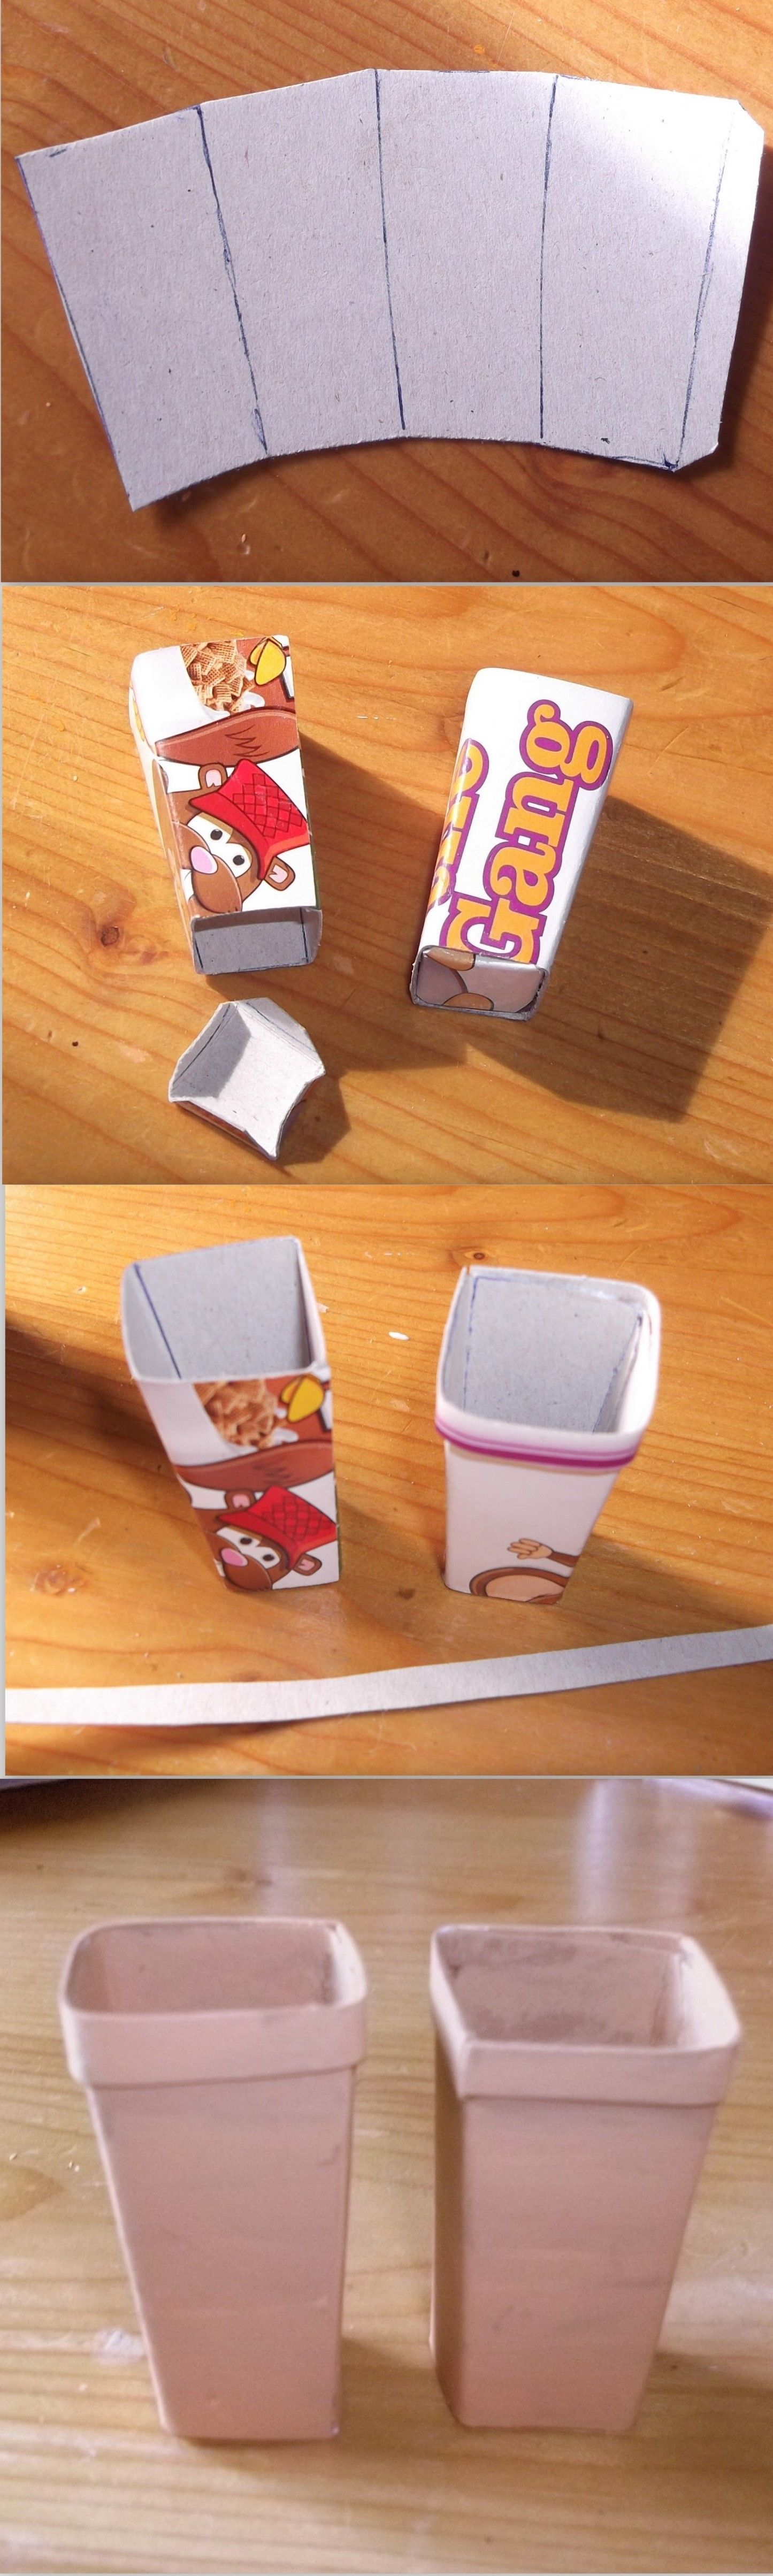 Photo tutorial how to make miniature terracotta planters from a how to make miniature terracotta planters from a cereal box diy dolls ccuart Choice Image